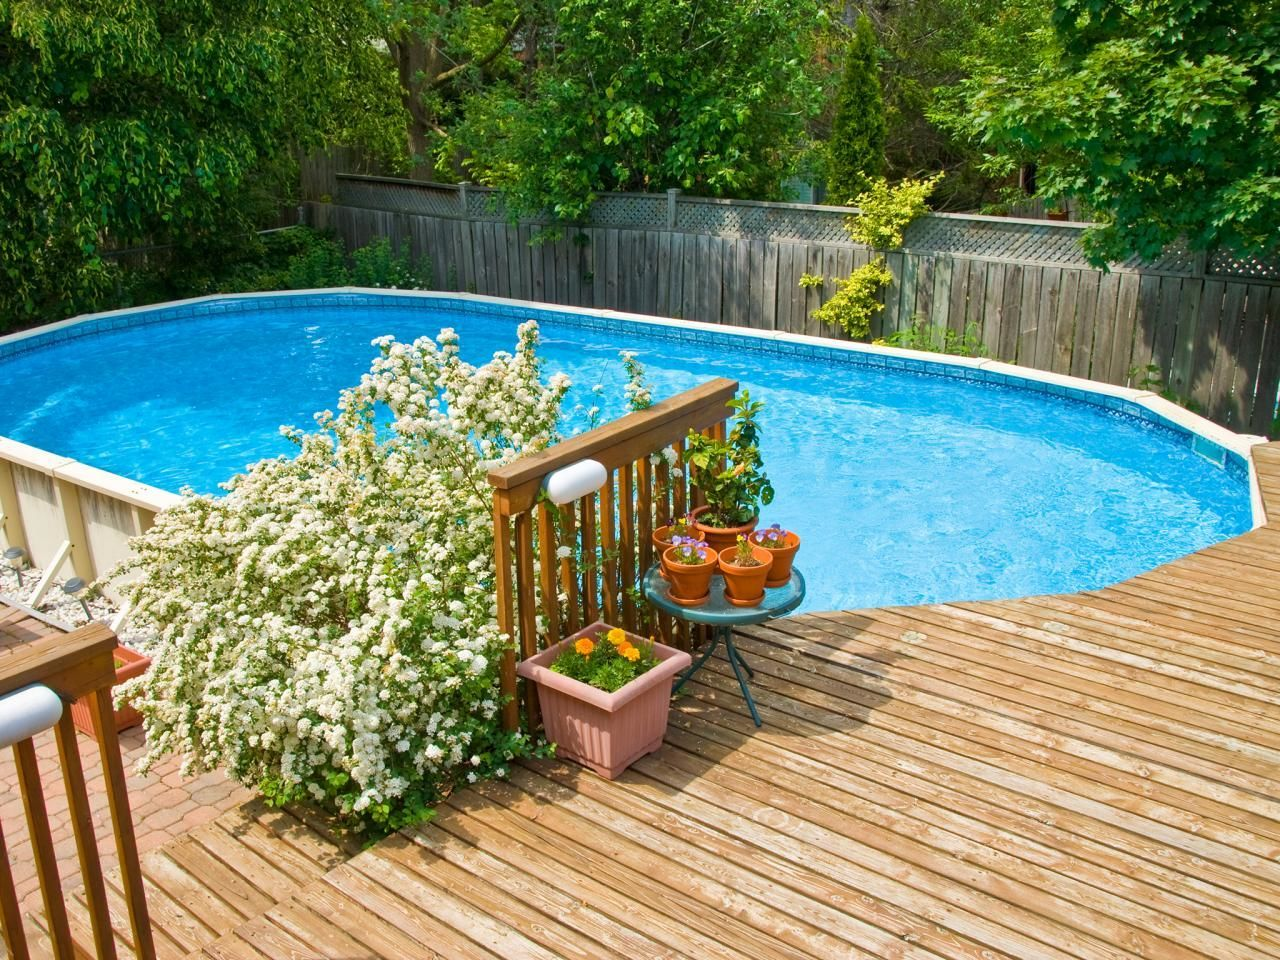 Diy Above Ground Pool Landscaping how to build a wood deck around above ground pool | contemporary